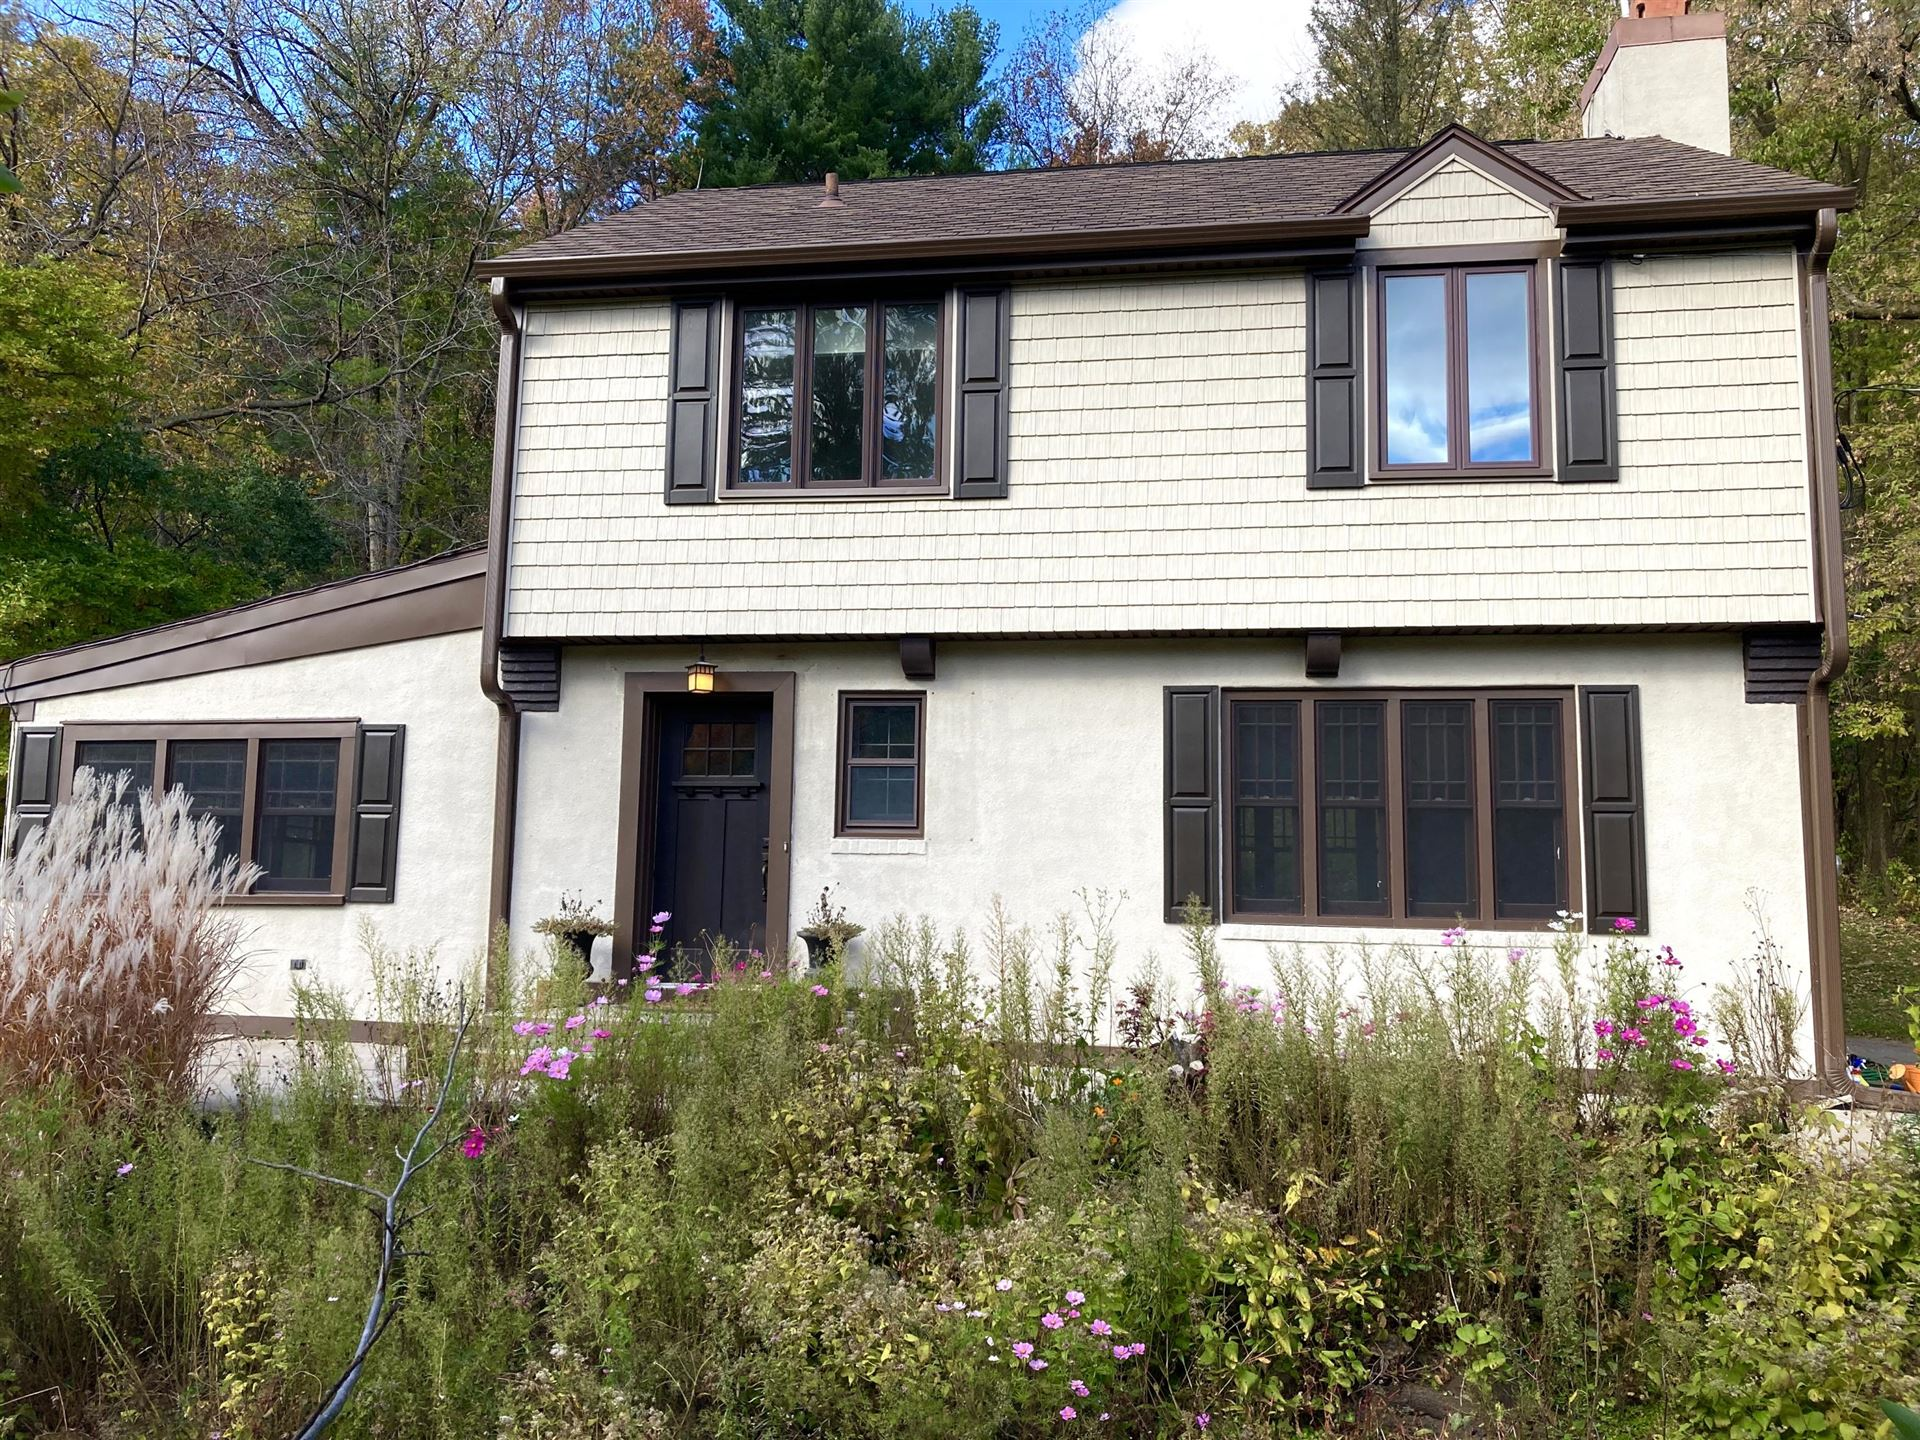 3507 Ebner Coulee Rd, Shelby, WI 54601 - MLS#: 1716005